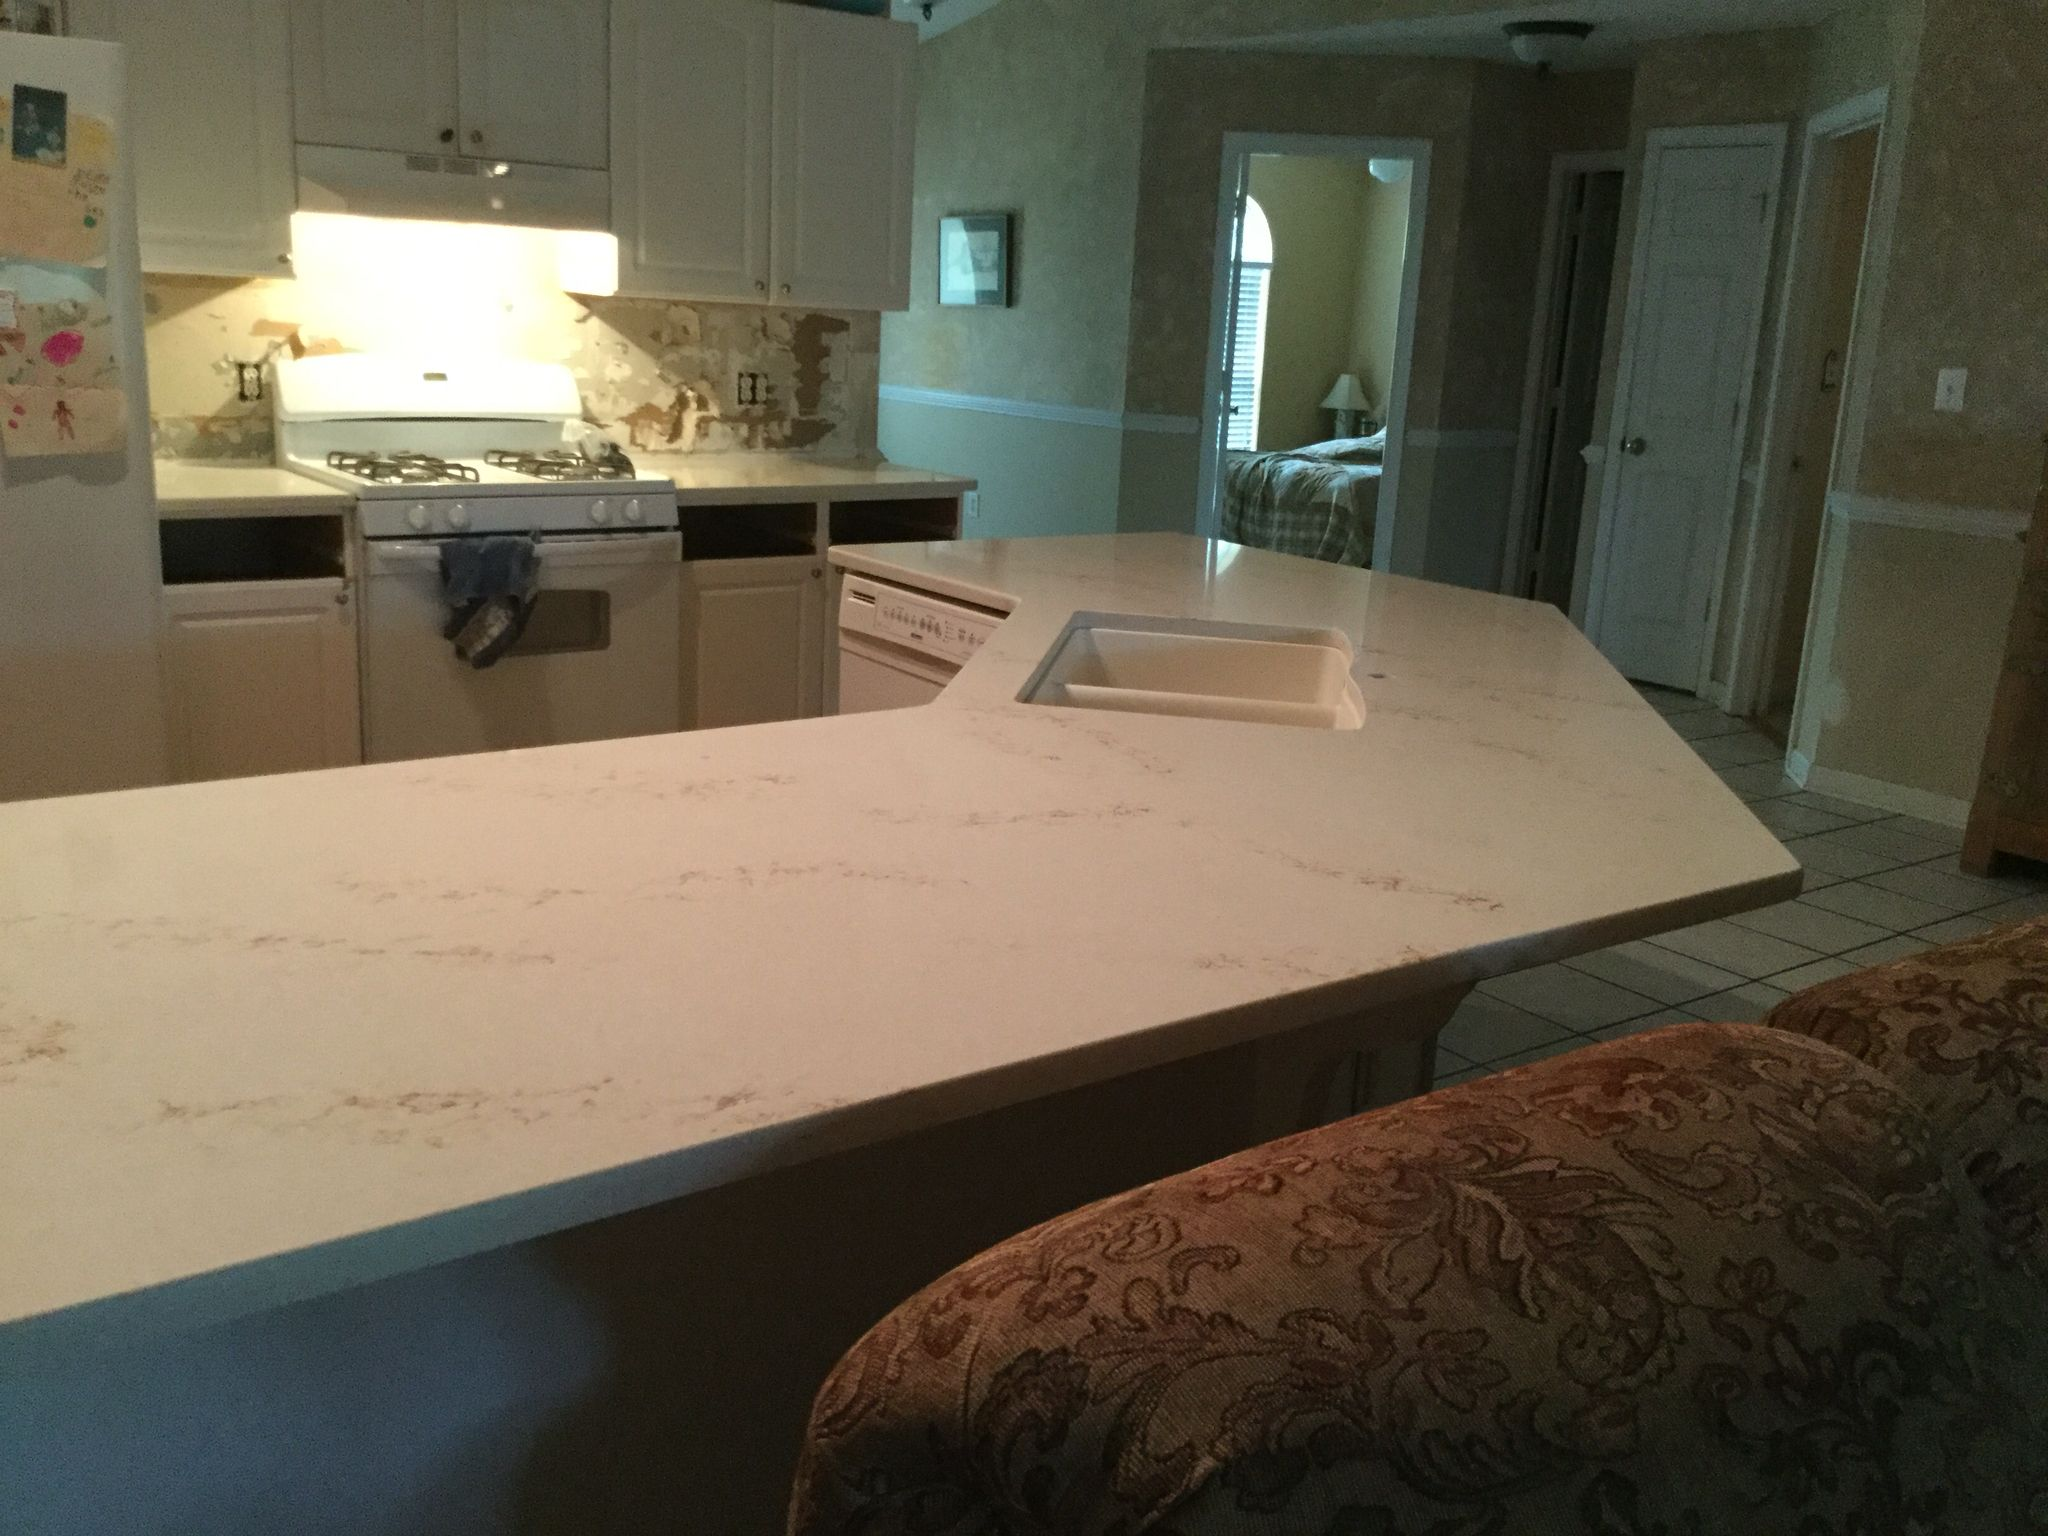 How Much Are Quartz Countertops Installed Phase 2 New Quartz Hanstone Countertop In Serenity